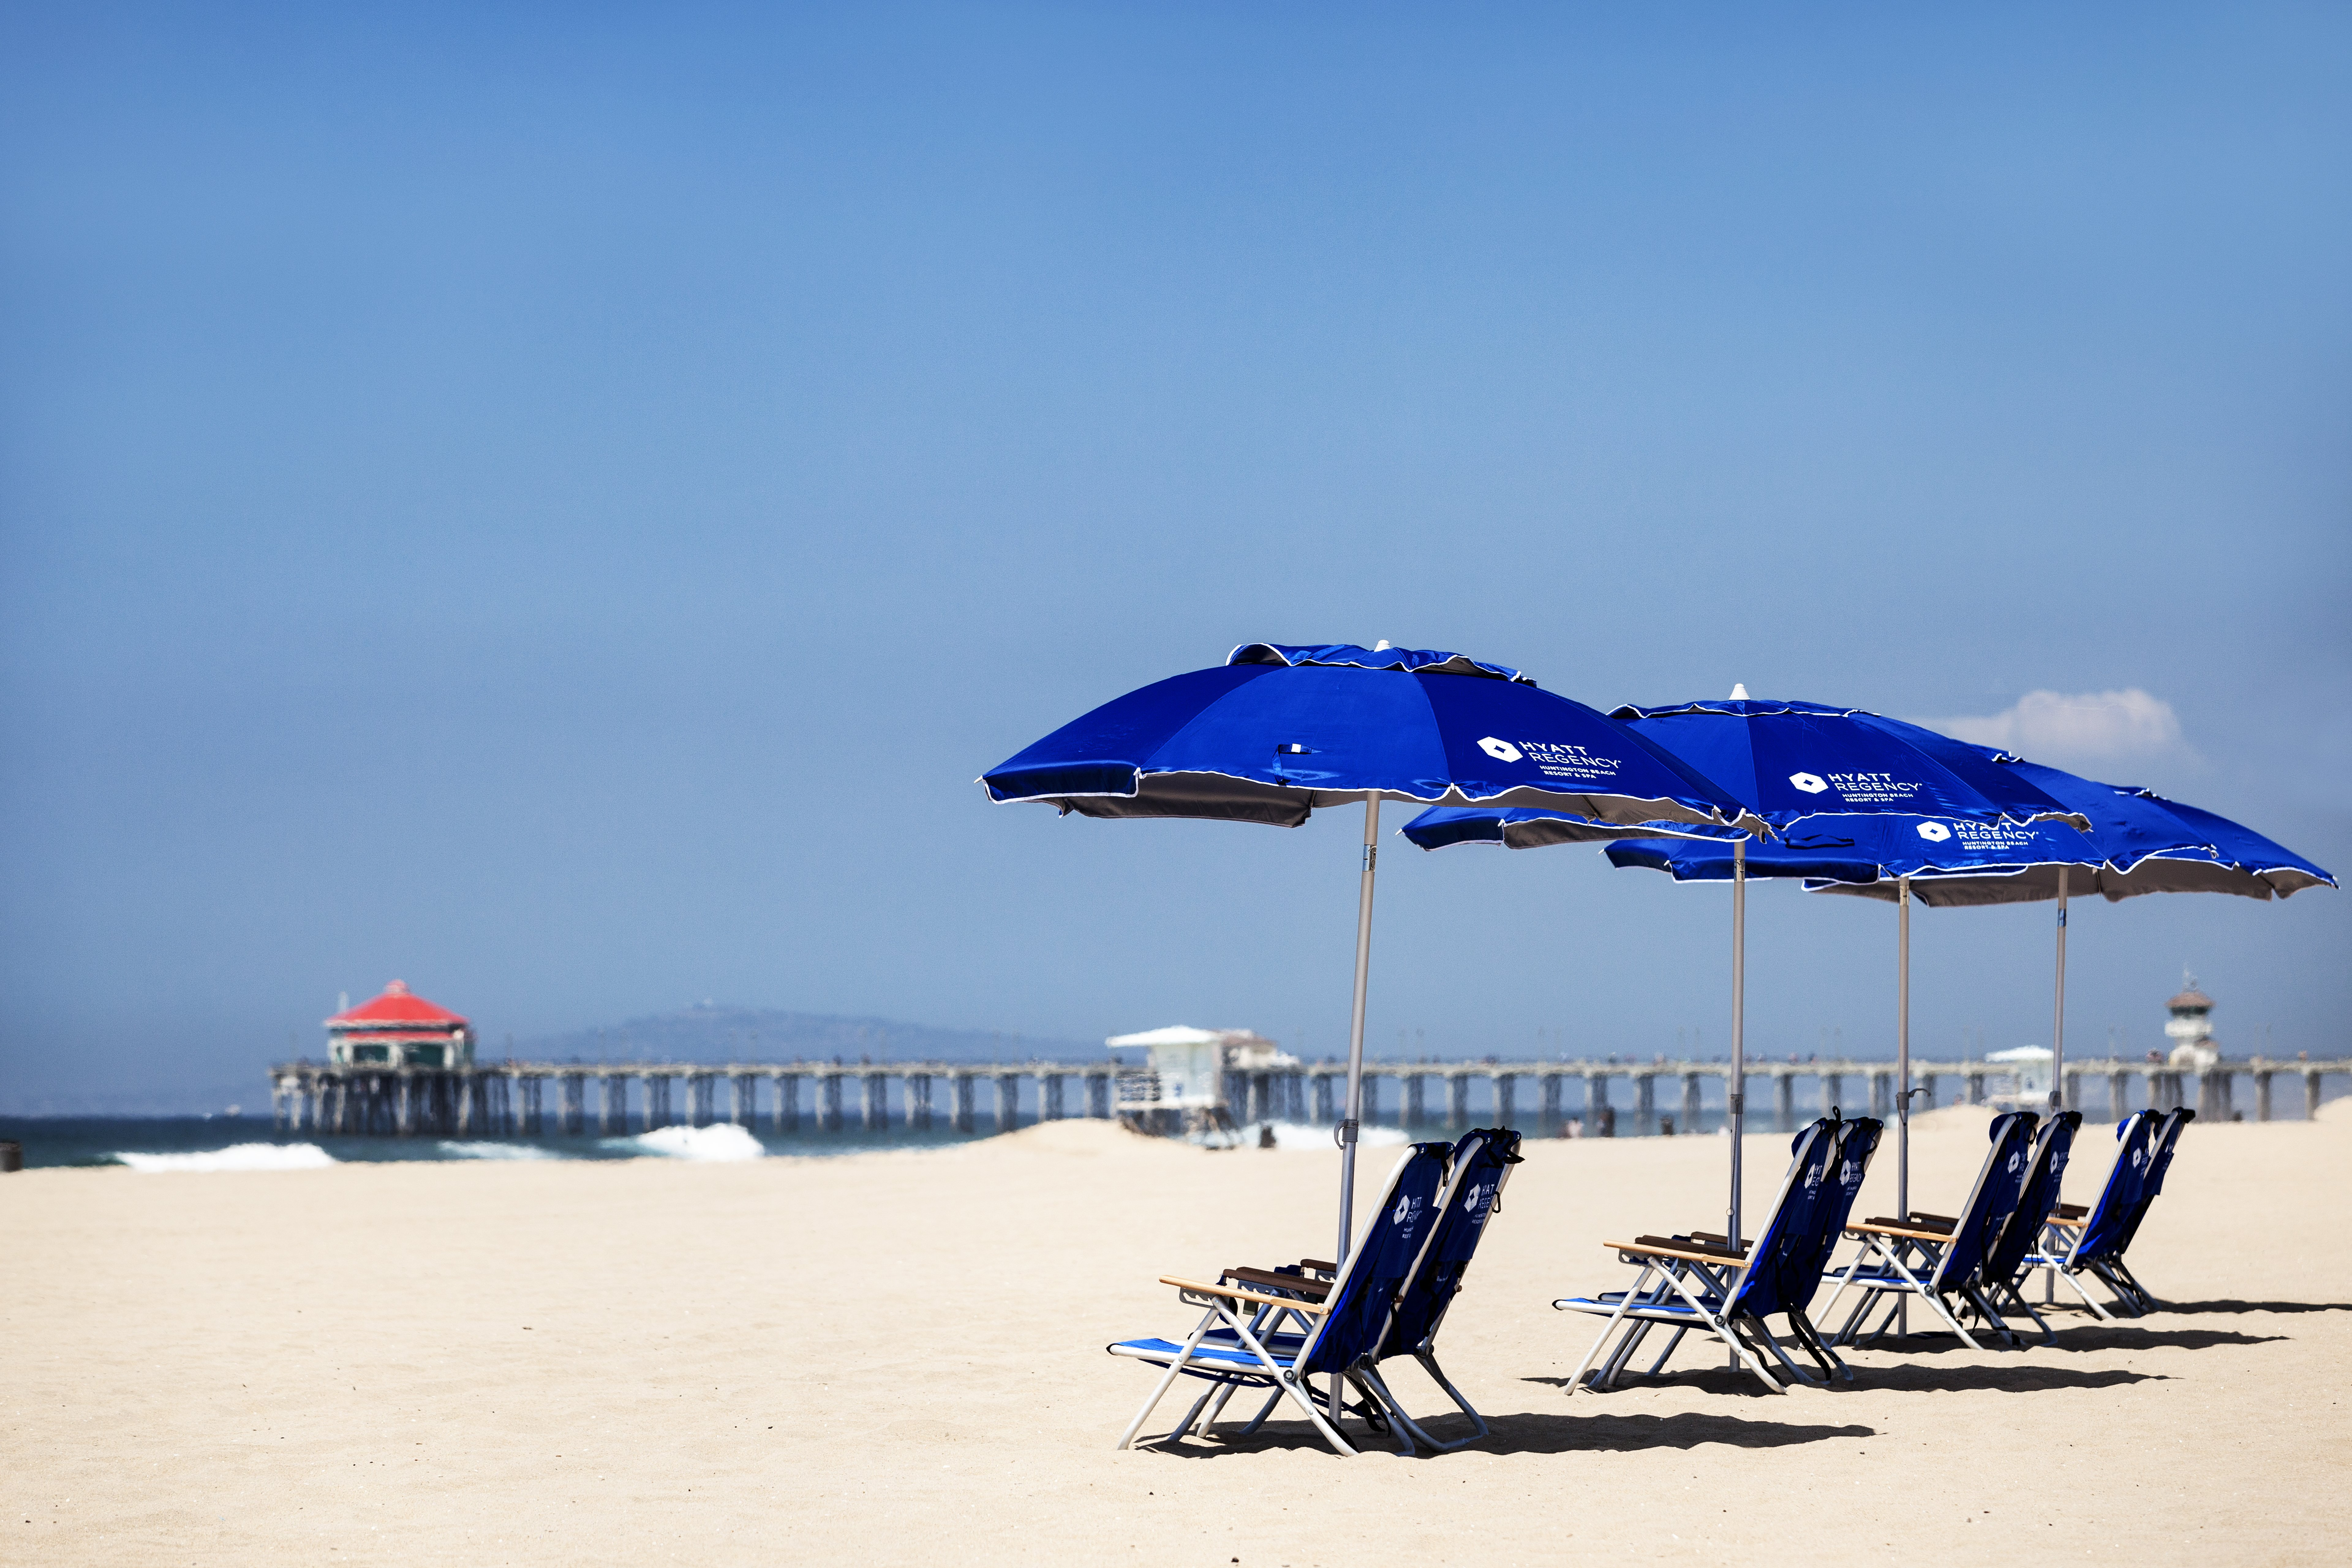 Hotel chairs and umbrellas set in the sand in front of Hyatt Regency Huntington Beach.